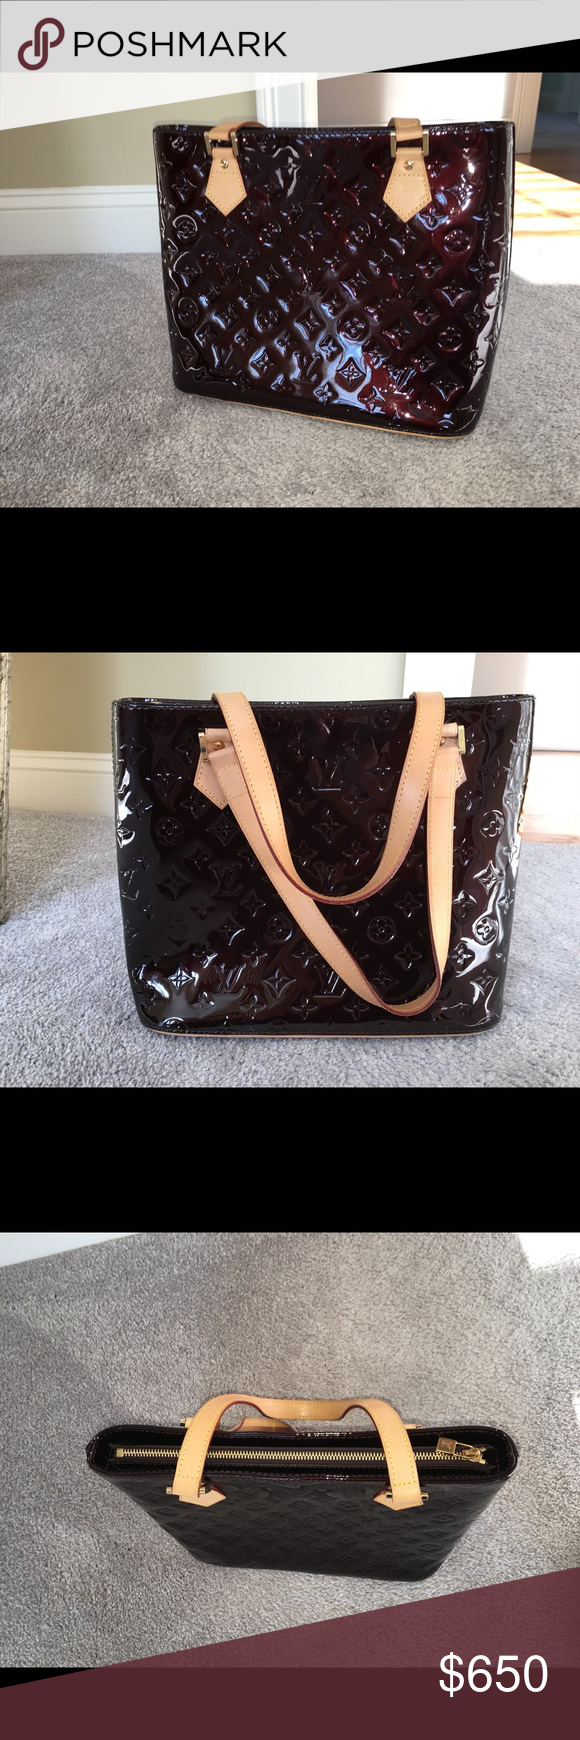 Louis Vuitton Houston Monogram Vernis Absolute Perfect Condition Barely Used Louis Vuitton Bags Totes Monogram Louis Vuitton Louis Vuitton Bag